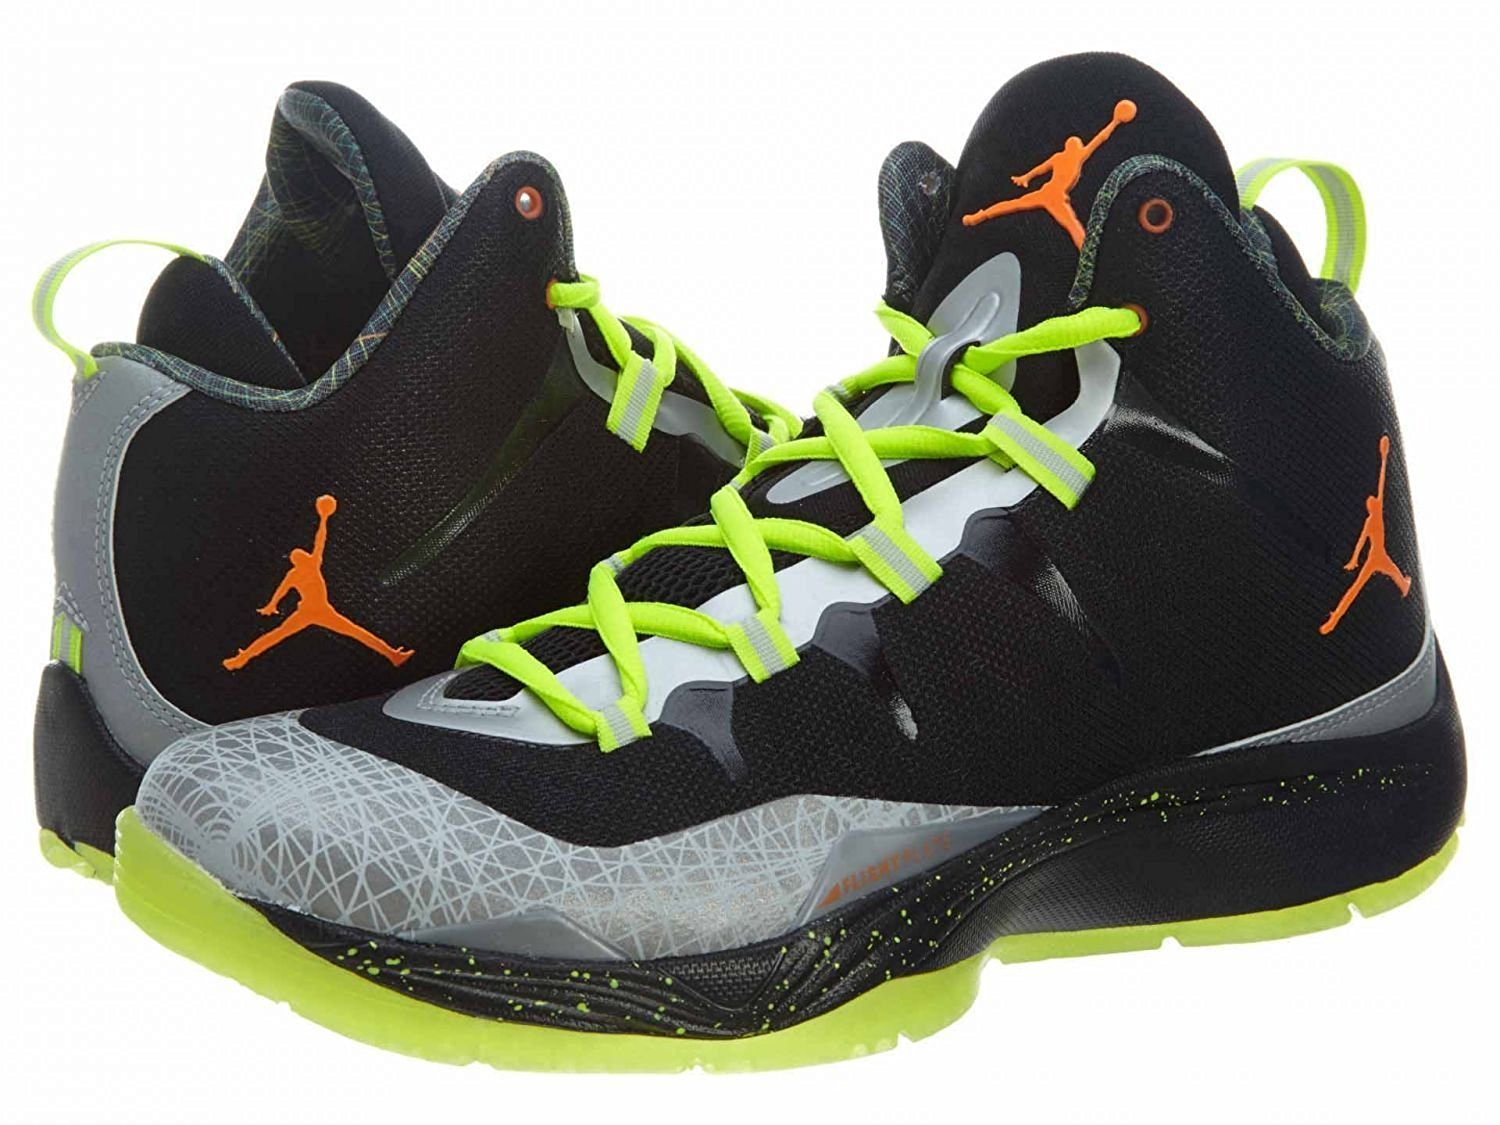 best service 57ce3 85237 Get Quotations · Men s Nike Jordan Super.Fly 2 Christmas Basketball Shoes  Size 12.5 BLACK TOTAL ORANGE